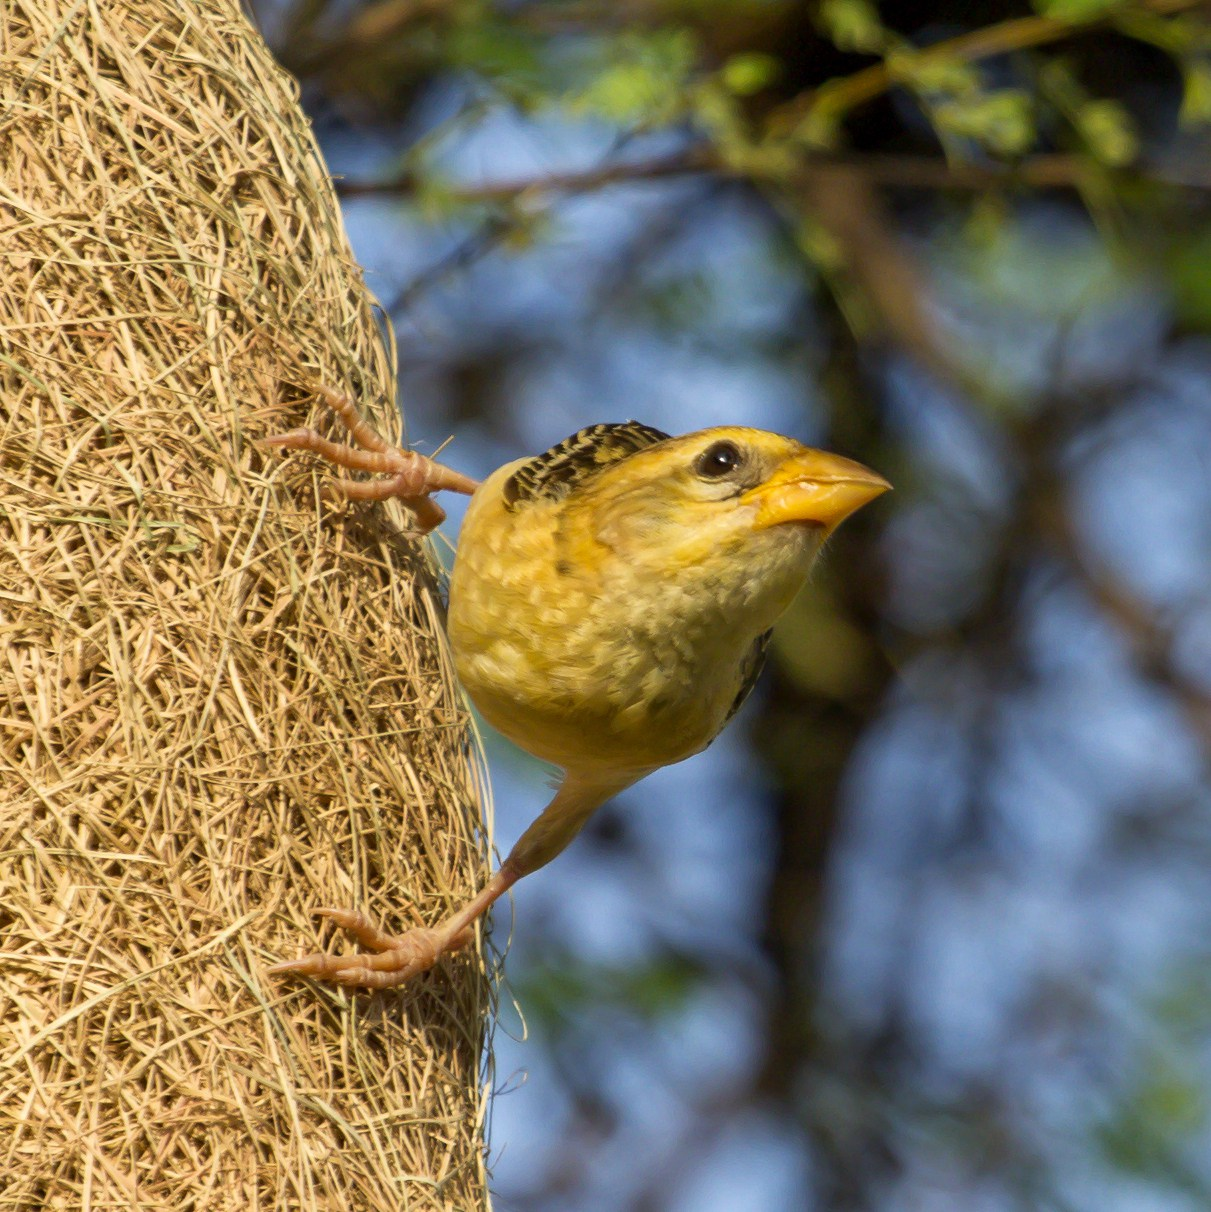 Bird-picture-gallery-by-Mukesh-Garg-s-unlimited-focus-on-bir-wallpaper-wp5804050